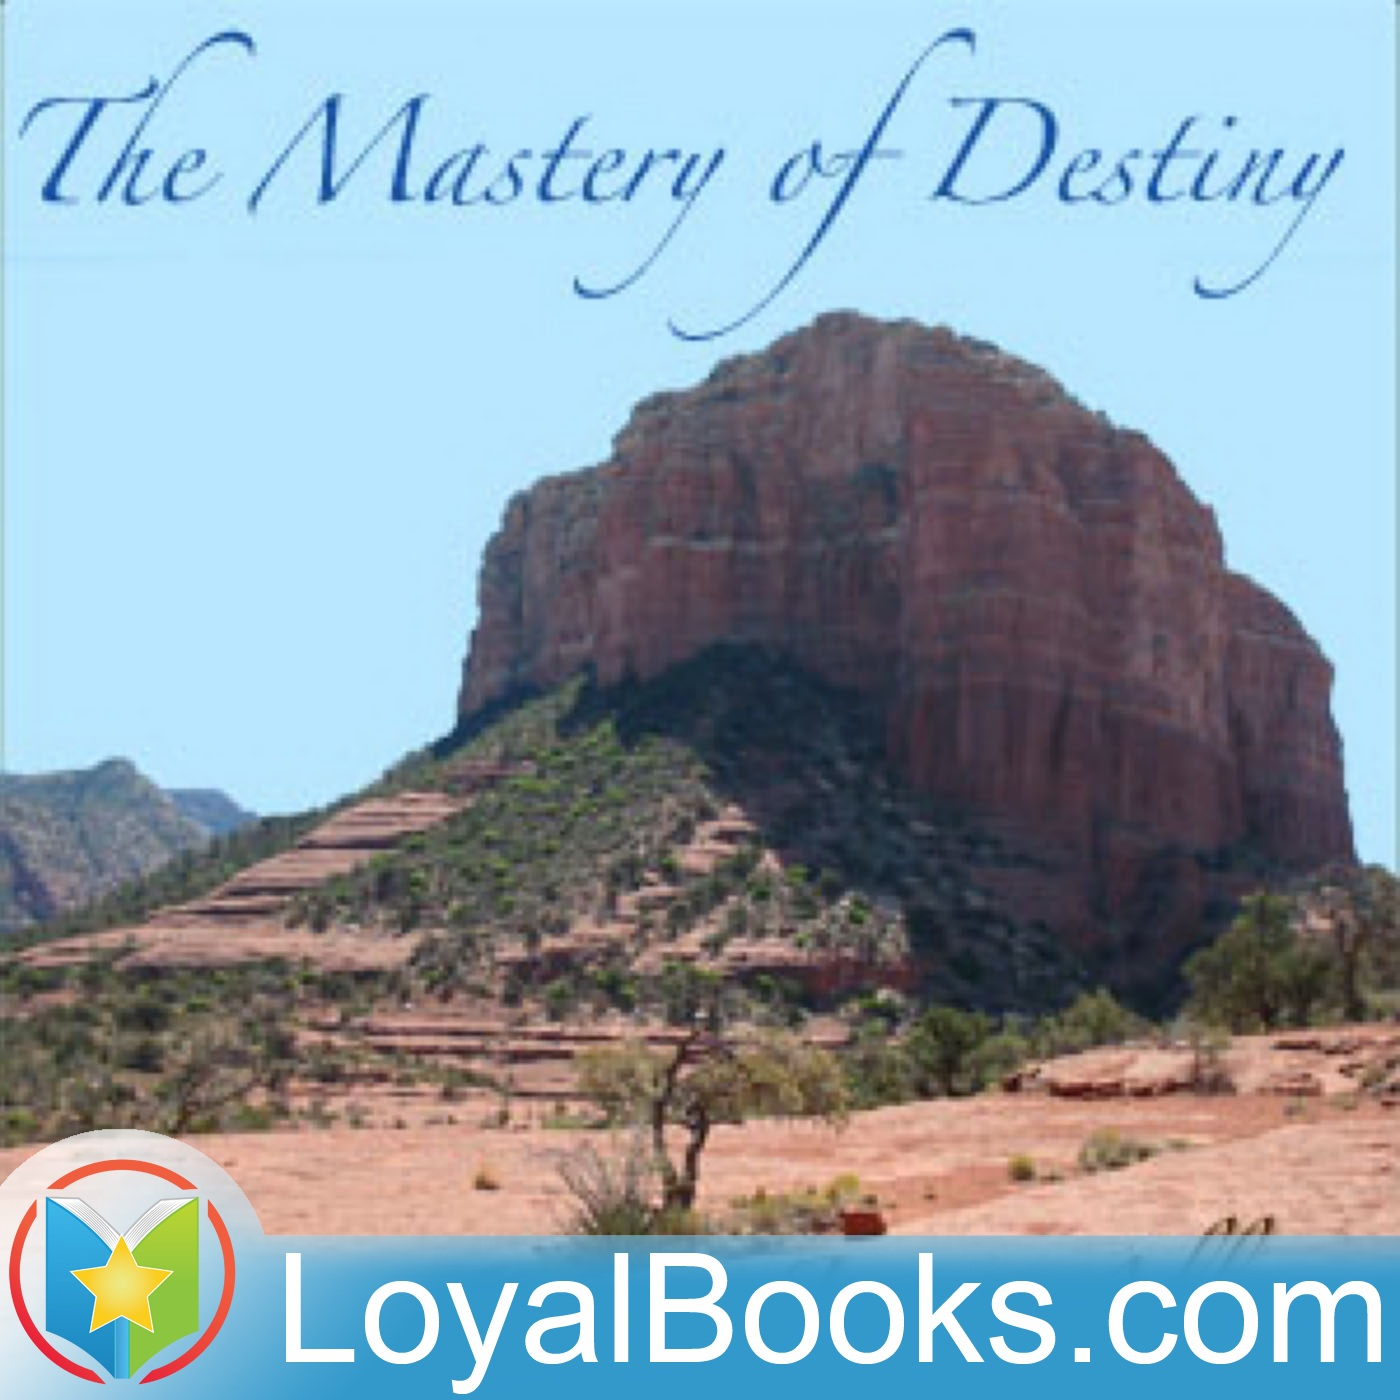 <![CDATA[The Mastery of Destiny by James Allen]]>